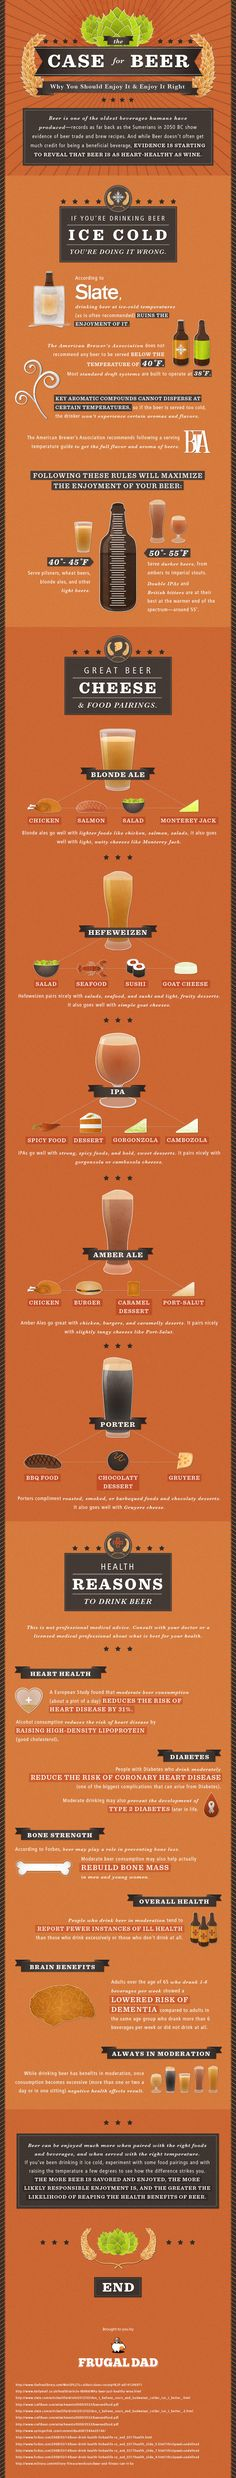 Love this: The case for #beer, and why you should enjoy it right. via @frugaldad @food_delights